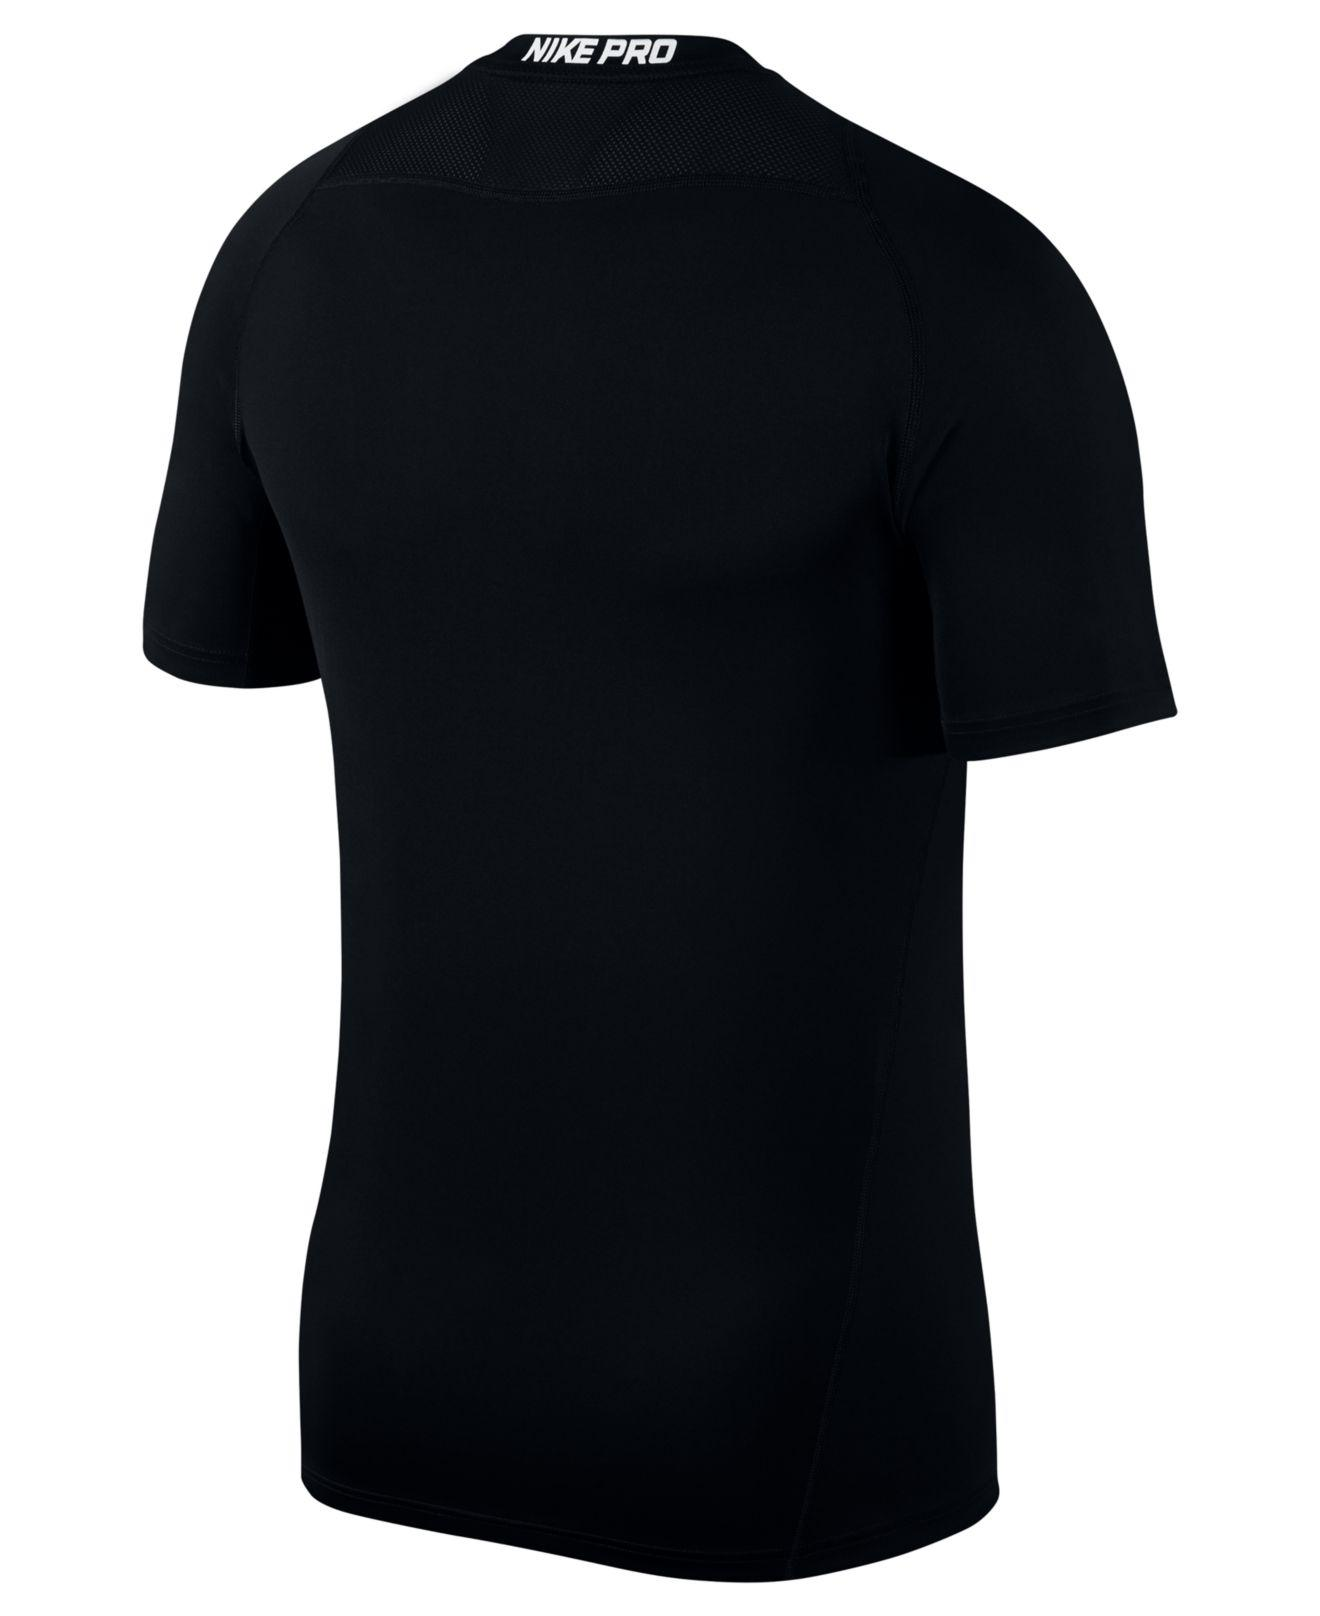 63f4abd8 Lyst - Nike Men's Pro Dri-fit Fitted T-shirt in Black for Men - Save 25%